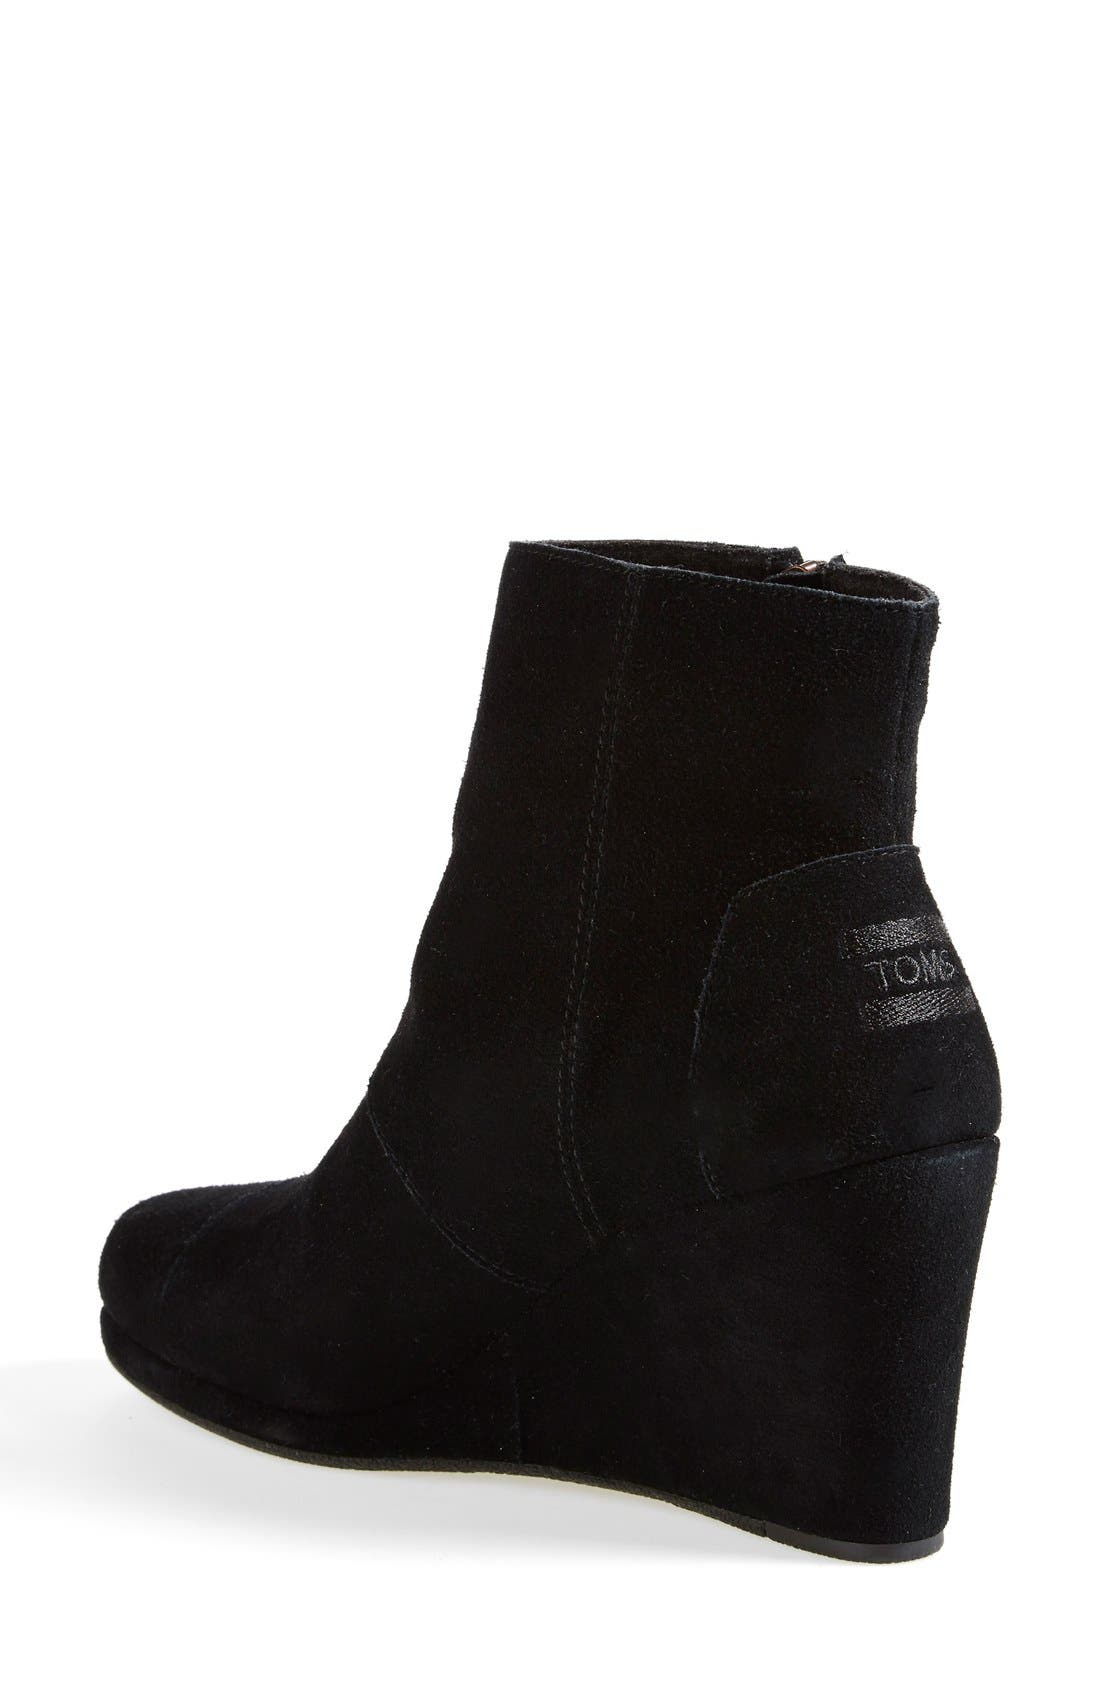 Alternate Image 2  - TOMS 'Desert' Wedge High Bootie (Women)